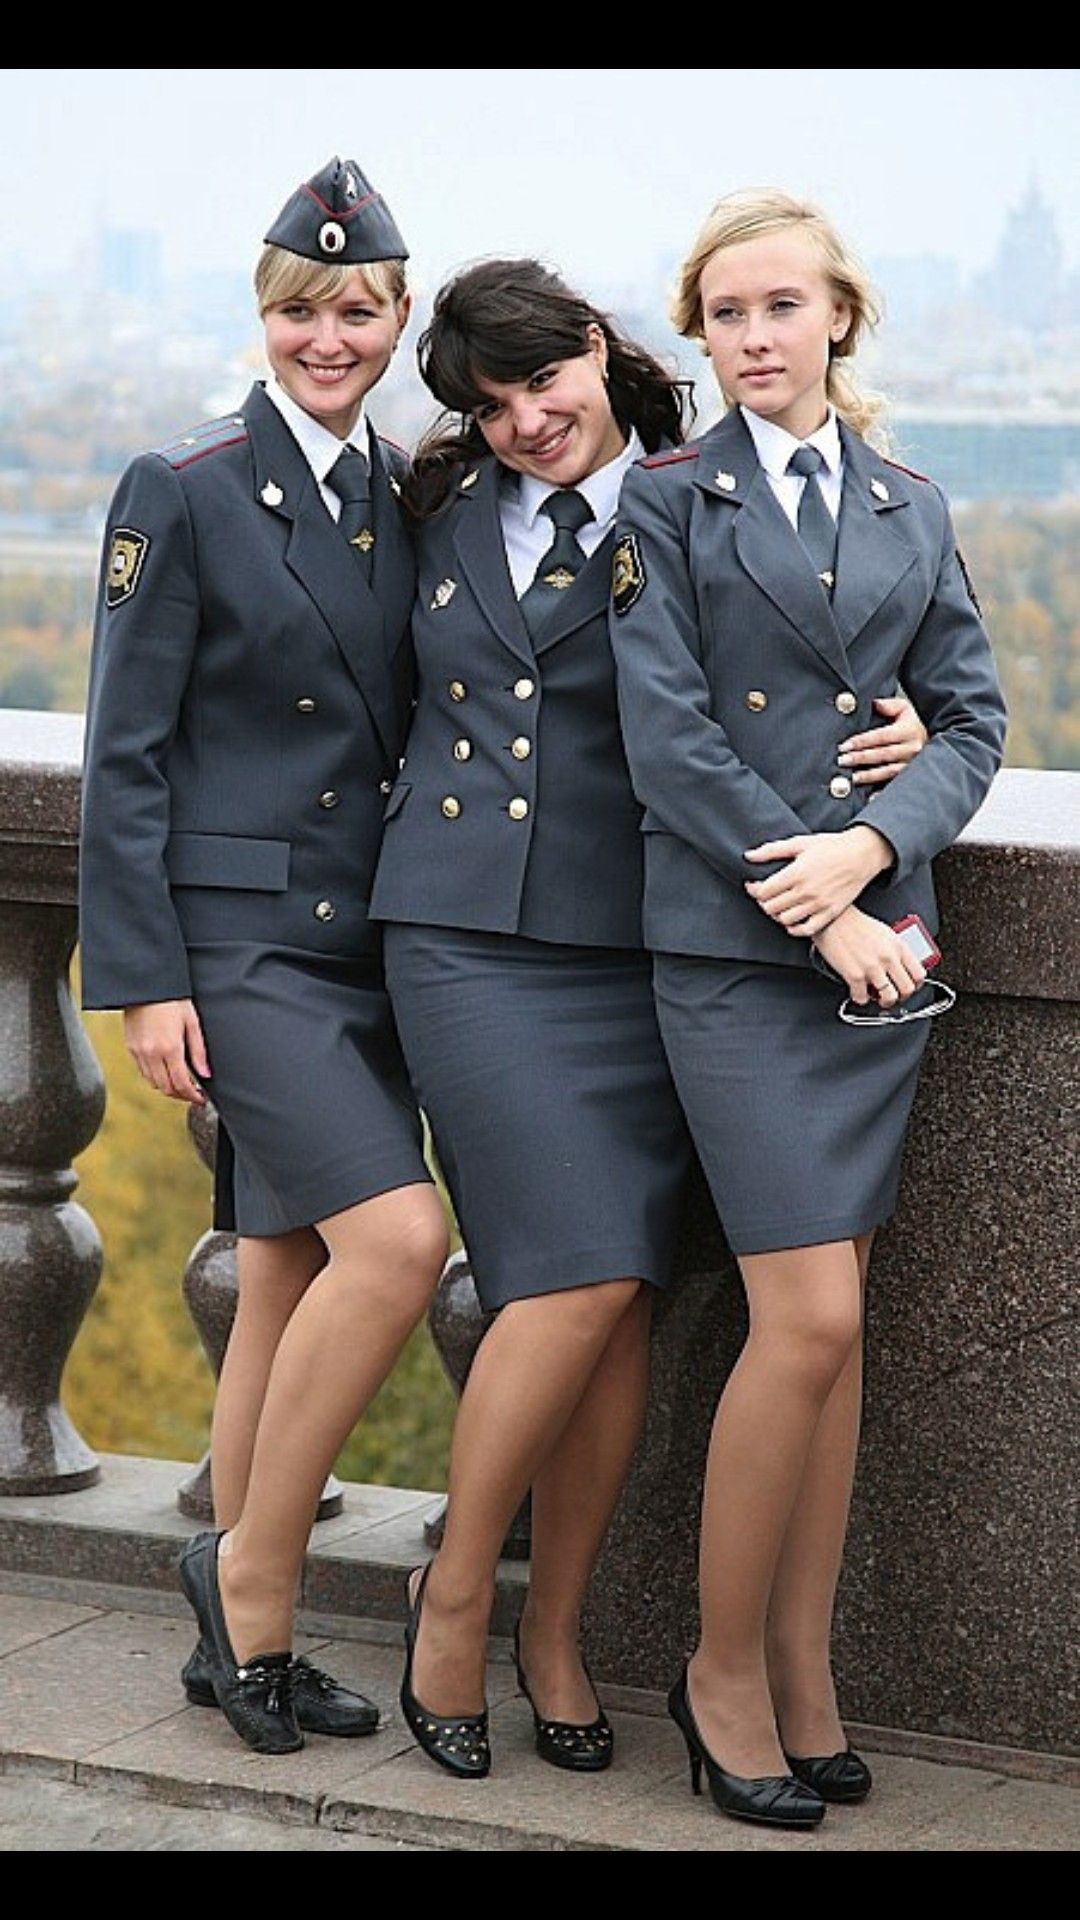 Police Uniforms, Girls In Uniform, Girls Uniforms, Army Uniform, Female  Soldier,